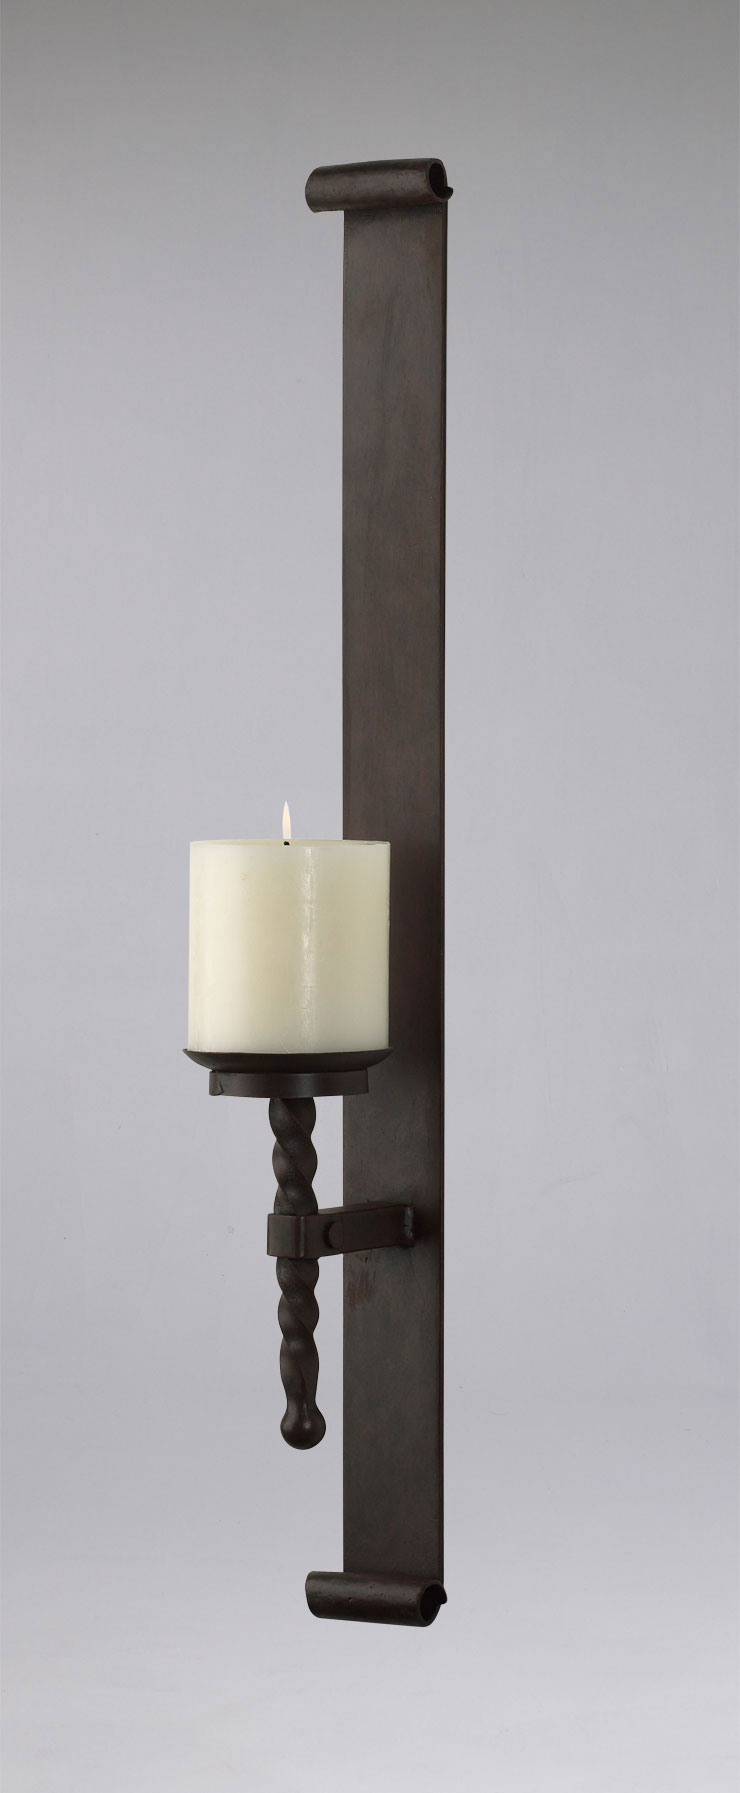 Details About Tuscan Metal Wall Candle Holder Rustic Sconce Large